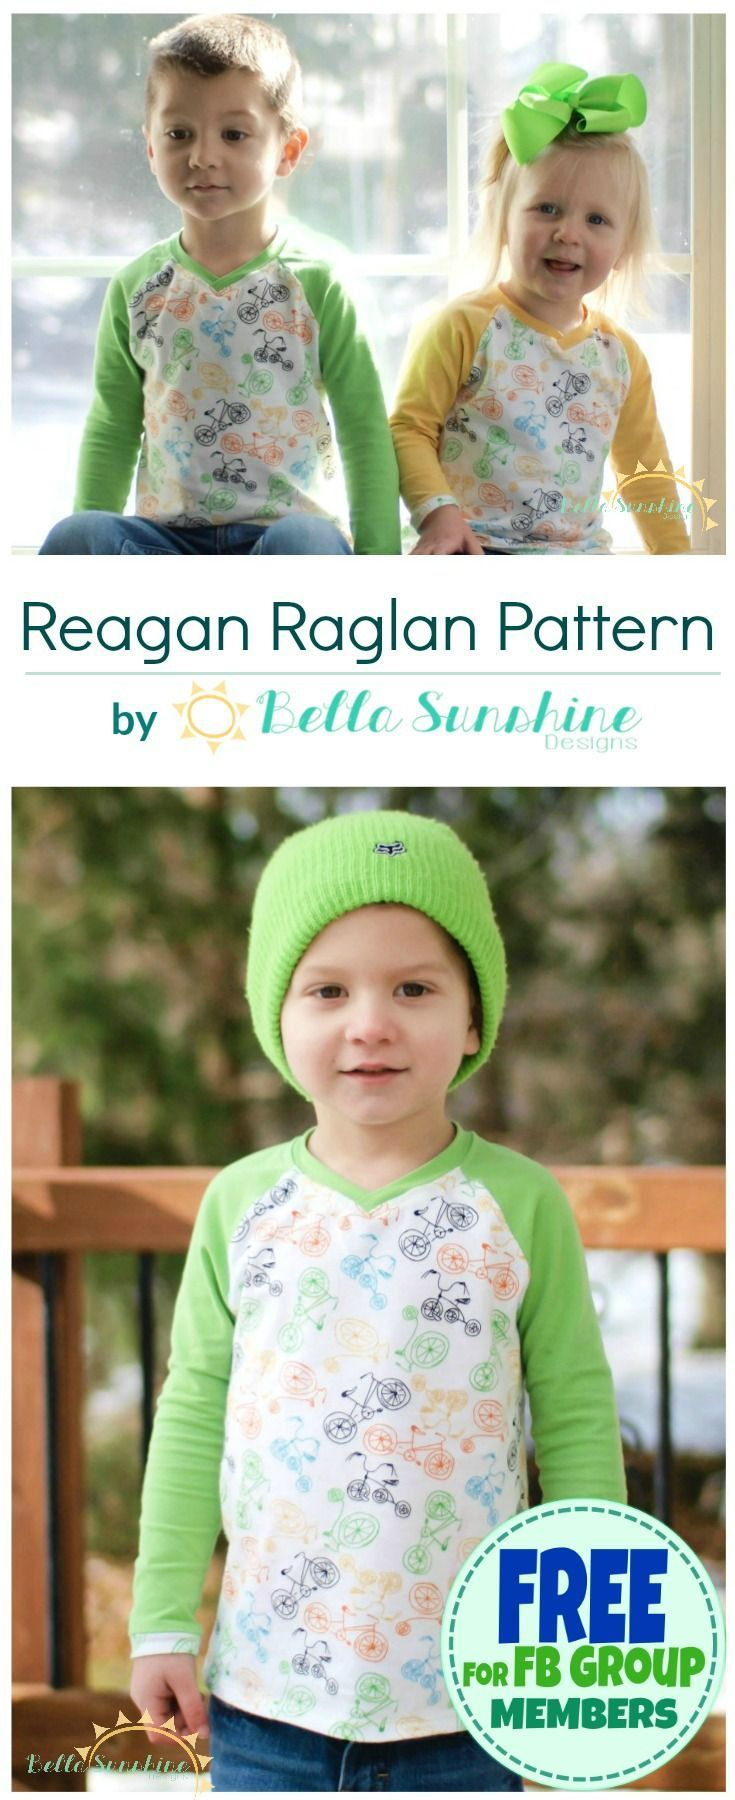 I am in love with this raglan sewing pattern for boy and girls by Bella Sunshine Designs. And best of all, you can get it for free by joining their Facebook group!